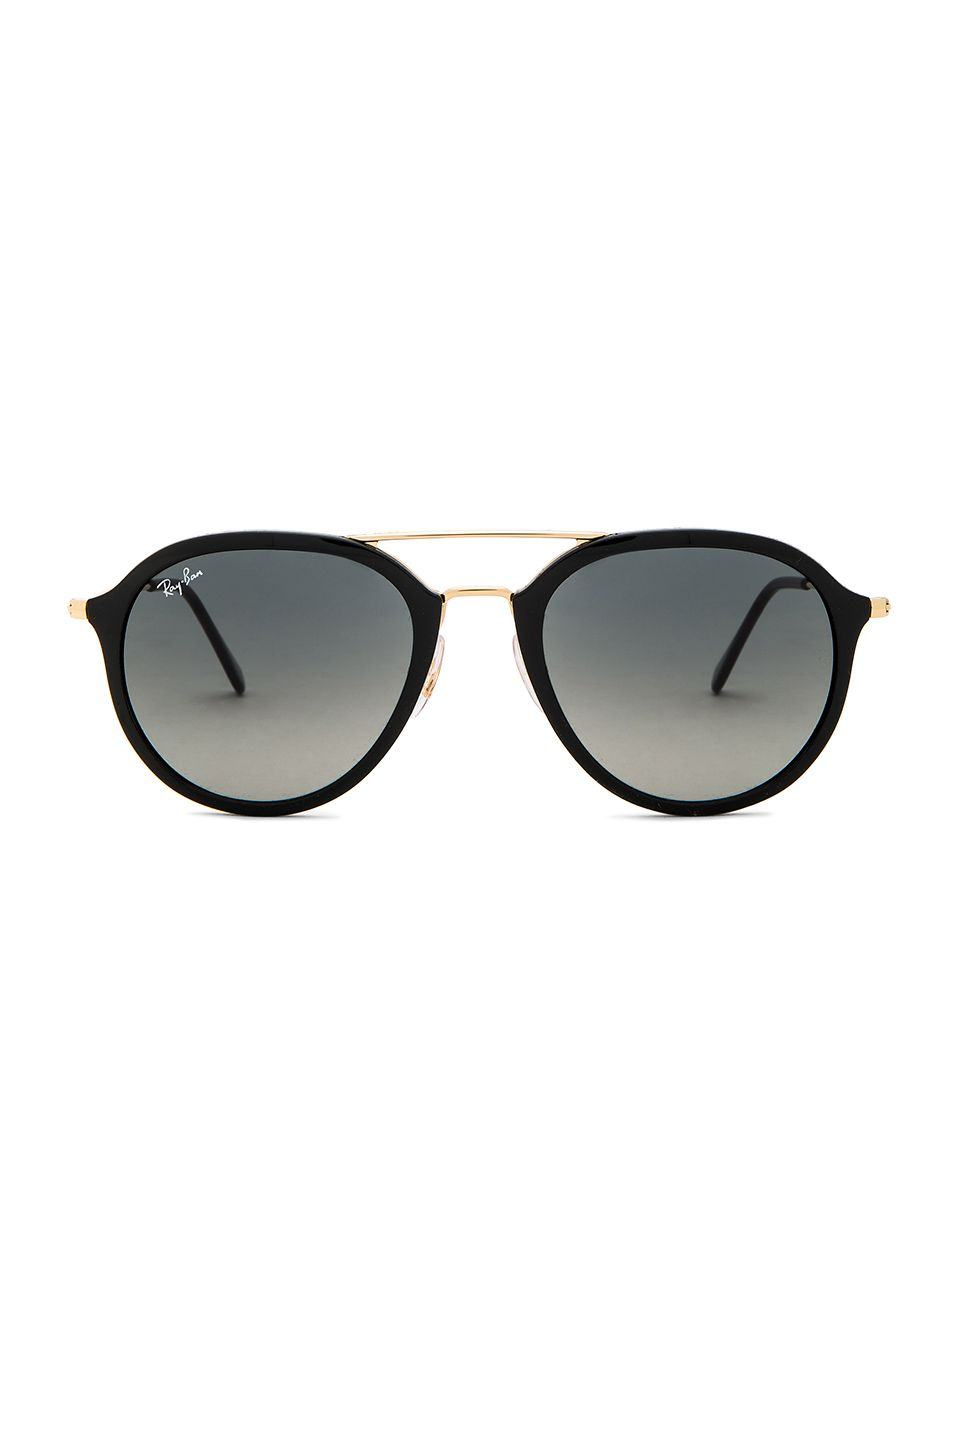 ray ban outlet aviator